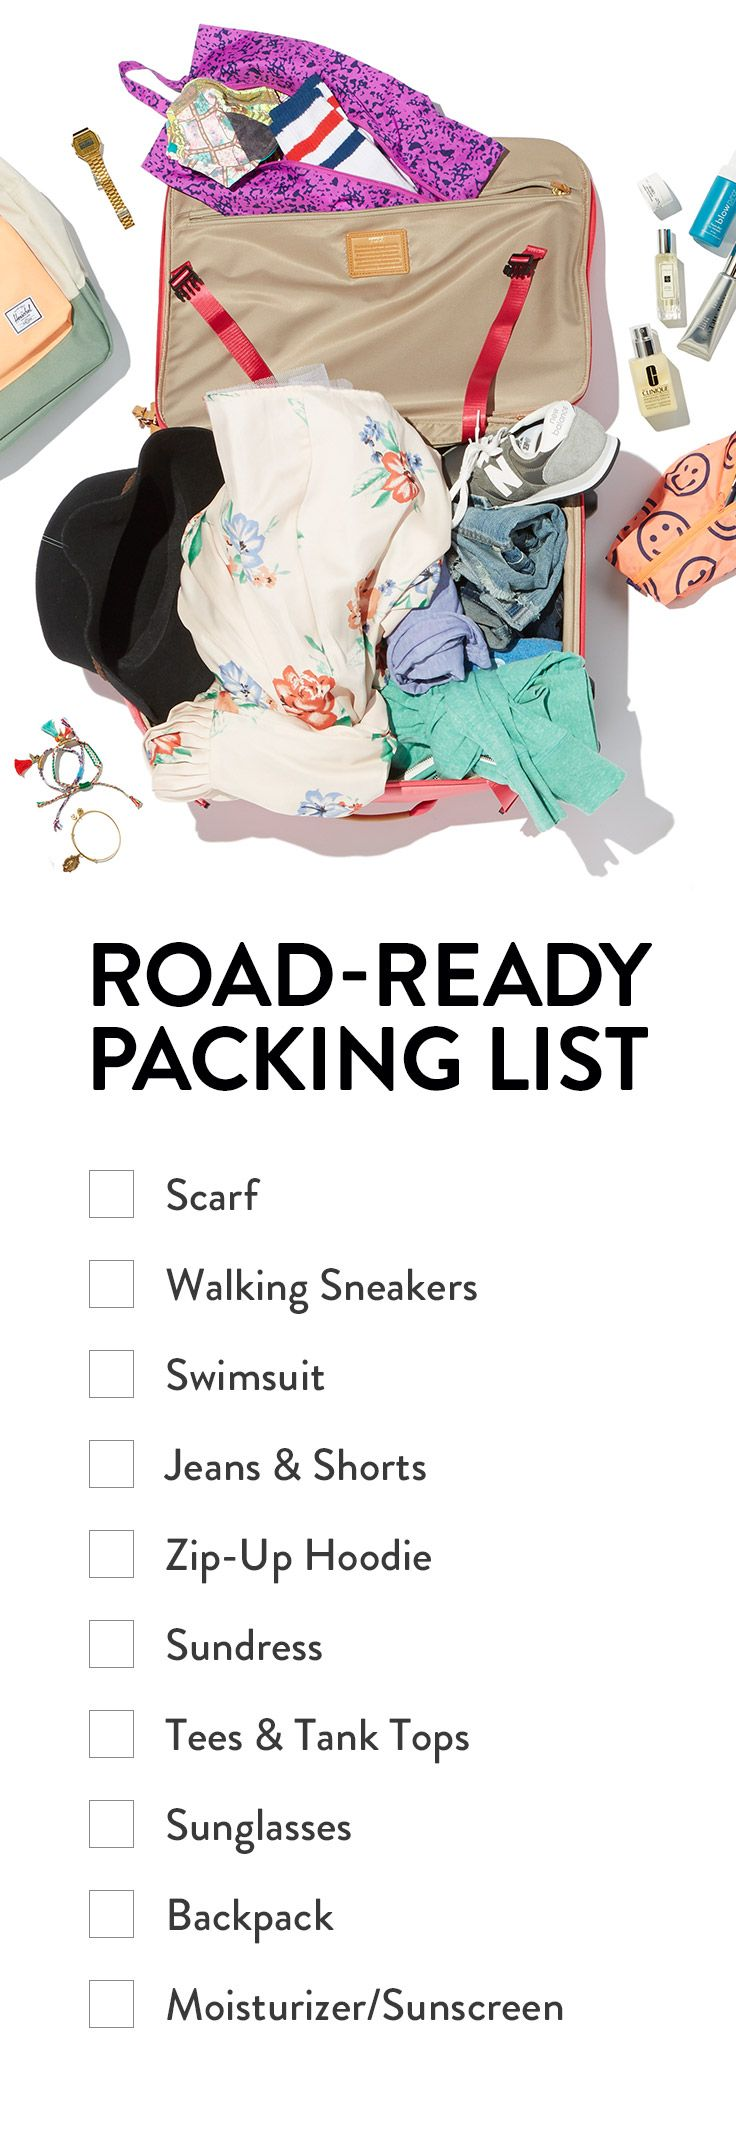 ROAD-READY PACKING LIST